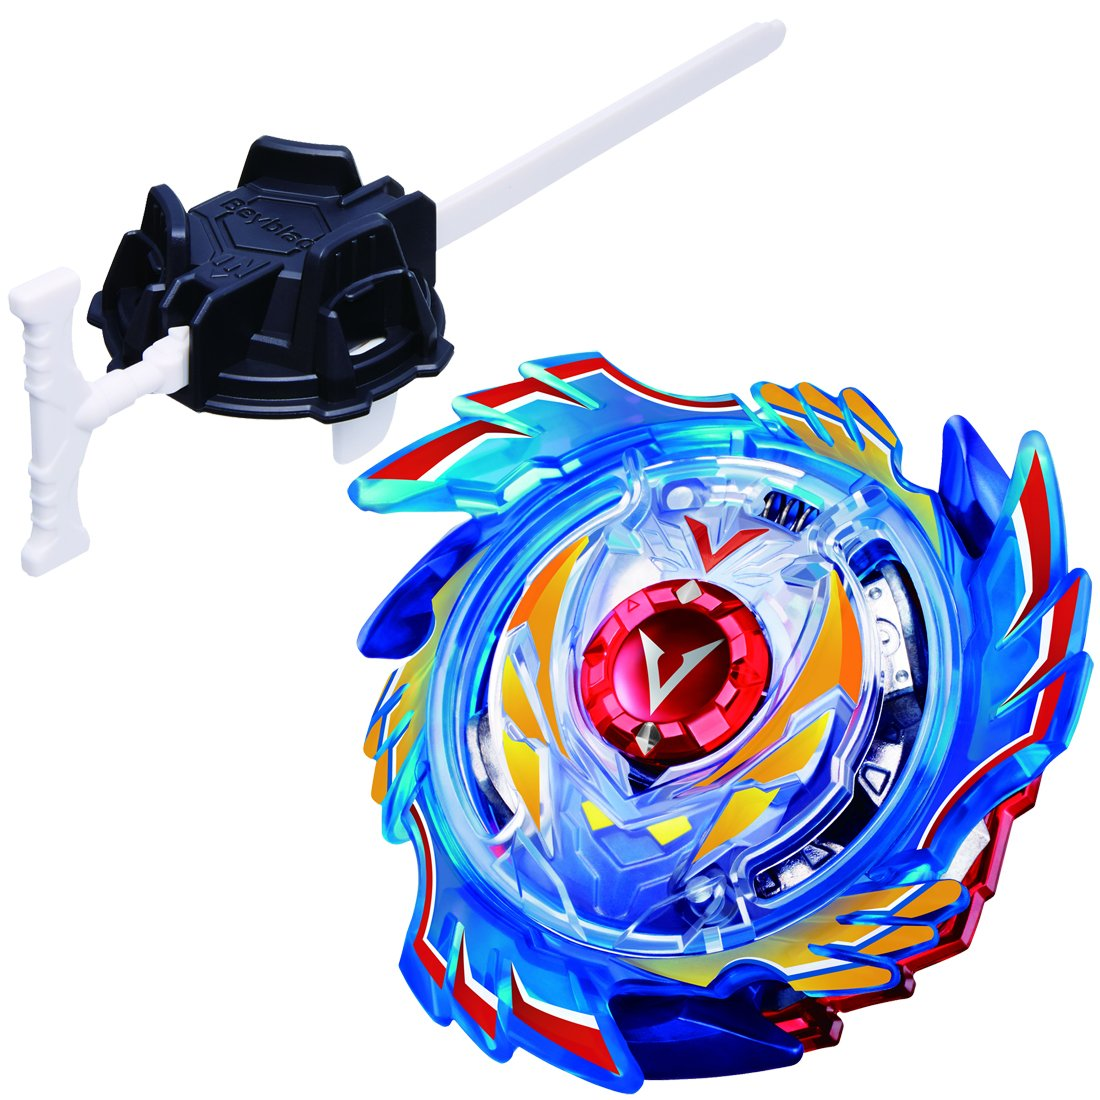 Takaratomy Beyblade Burst B-73 God Valkyrie.6V.Rb Starter Pack with  Launcher Spinning Top  Amazon.com.au  Toys   Games ac1dbda5ac